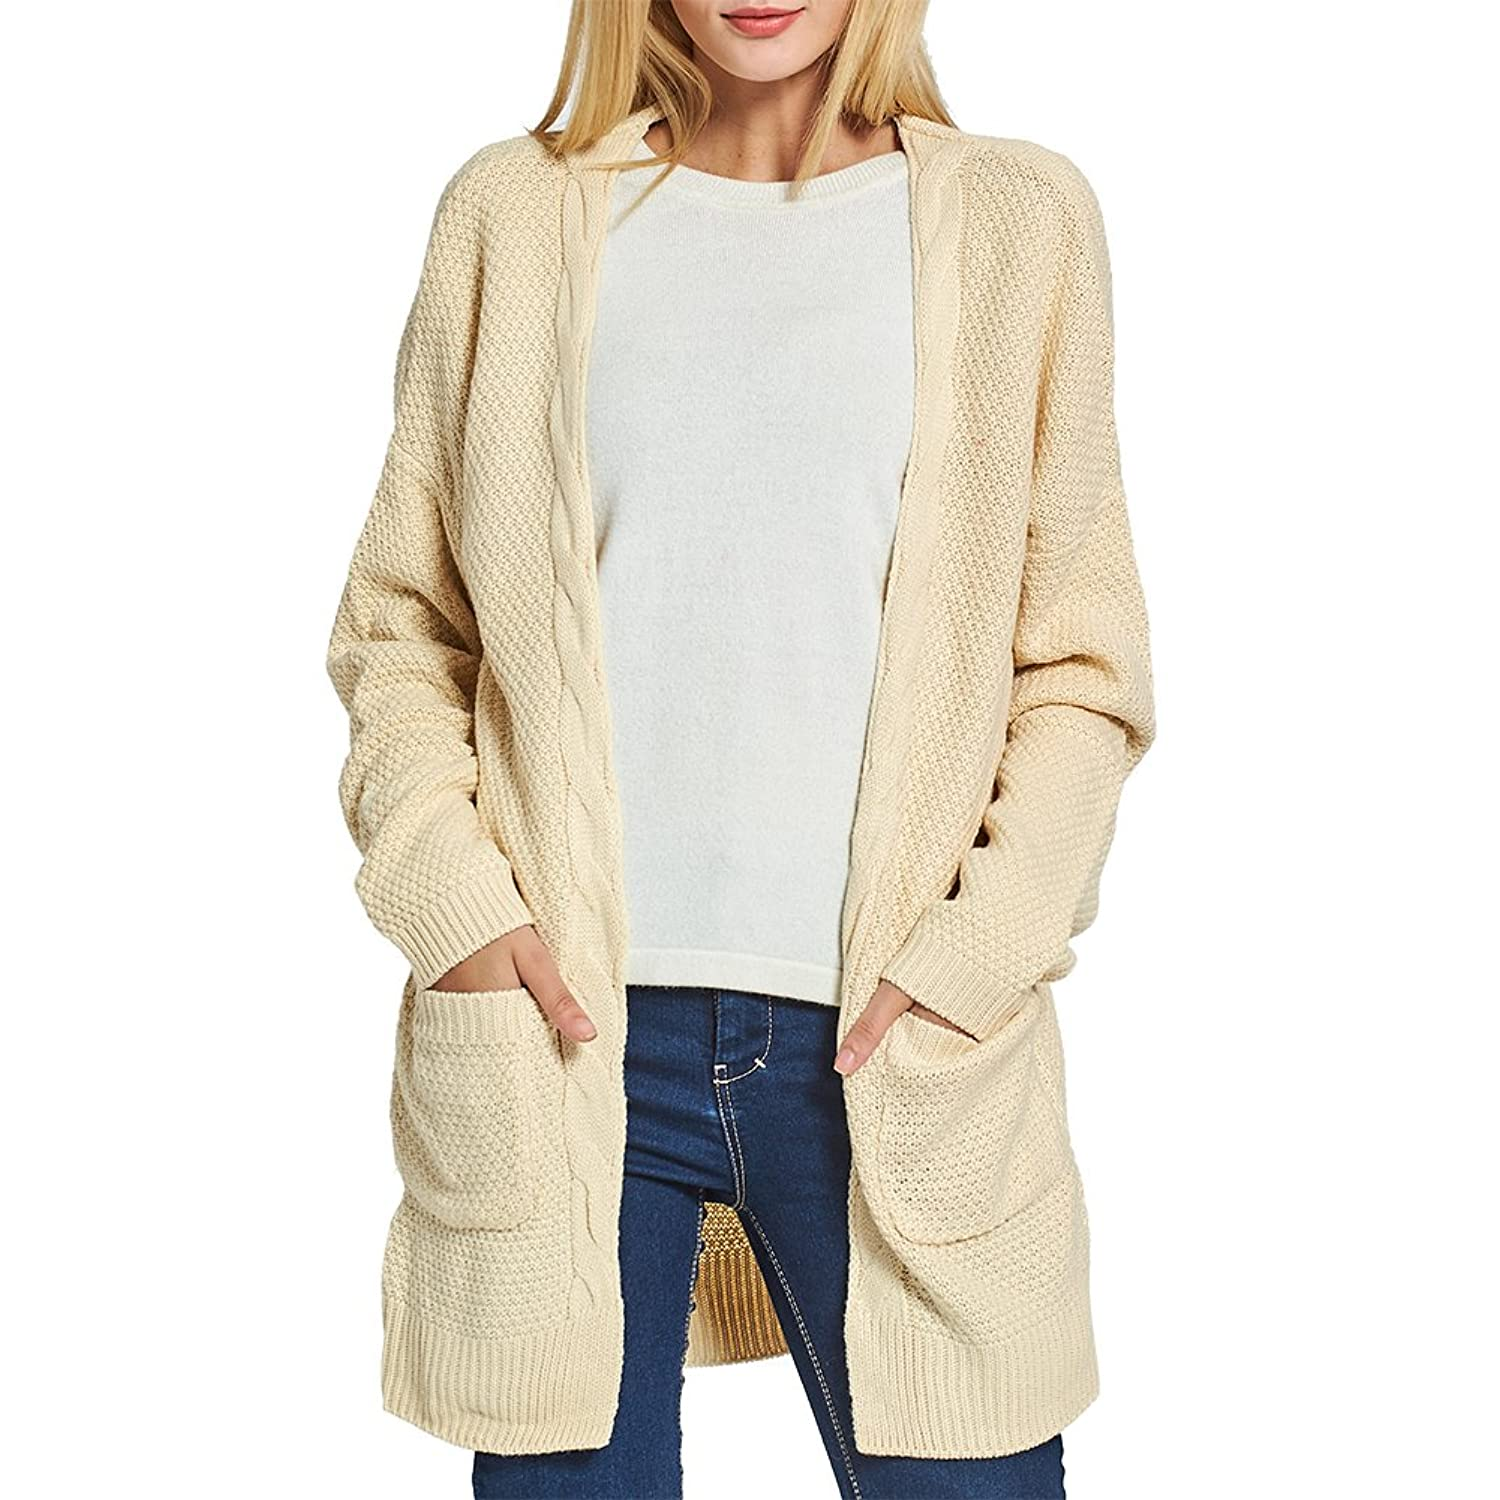 37081f9f4114 Top 10 wholesale Ladies Sweater In Amazon - Chinabrands.com